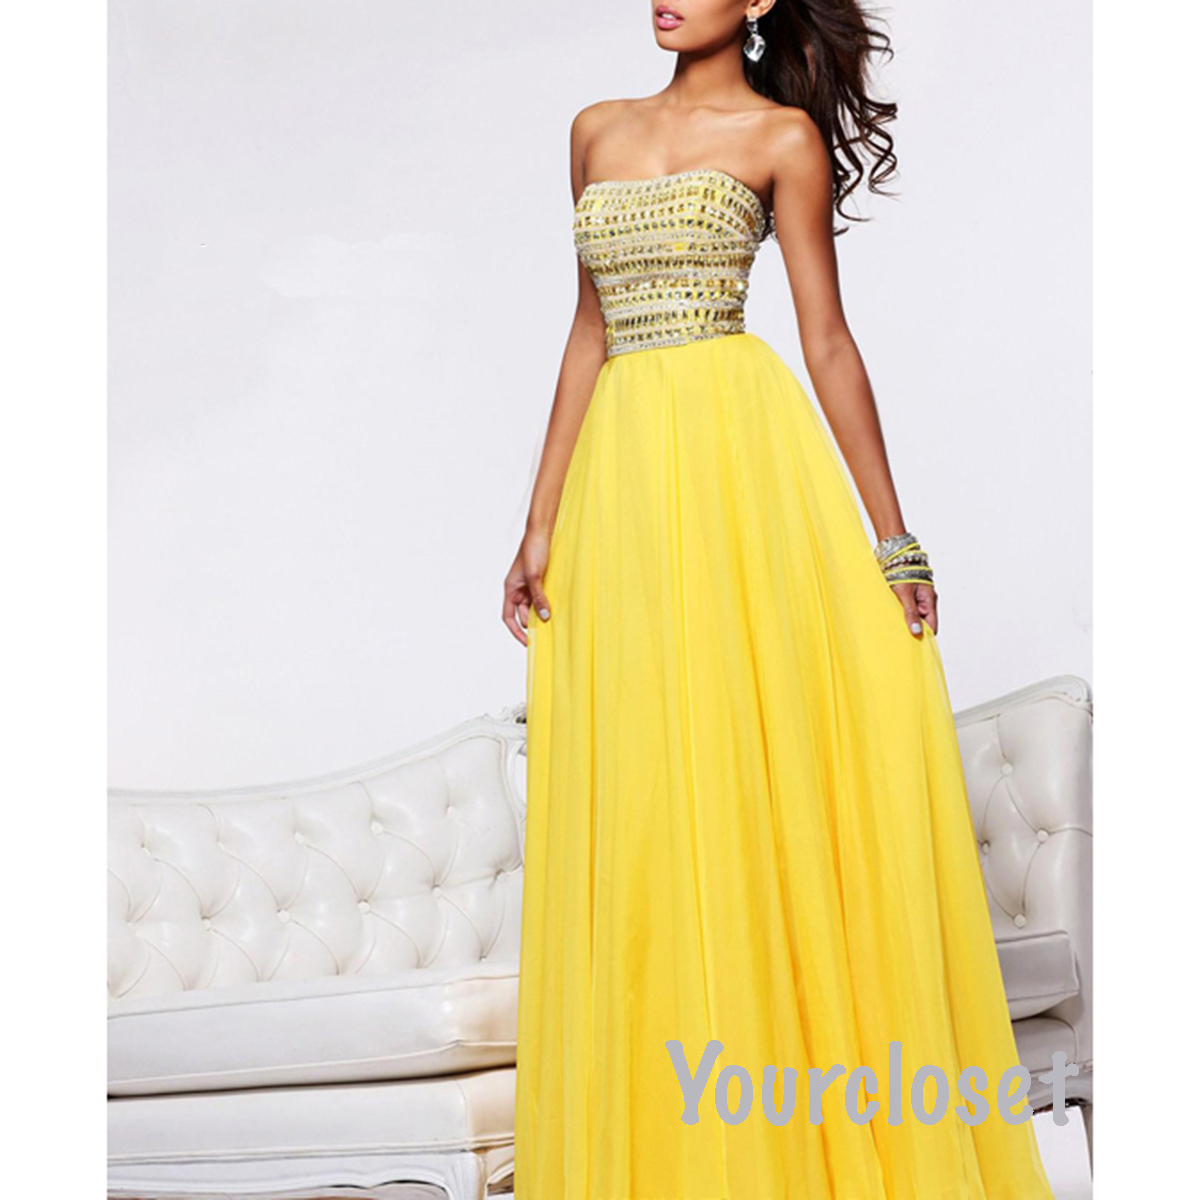 ... dress-2014/products/4147853-charming-yellow-chiffon-floor-length